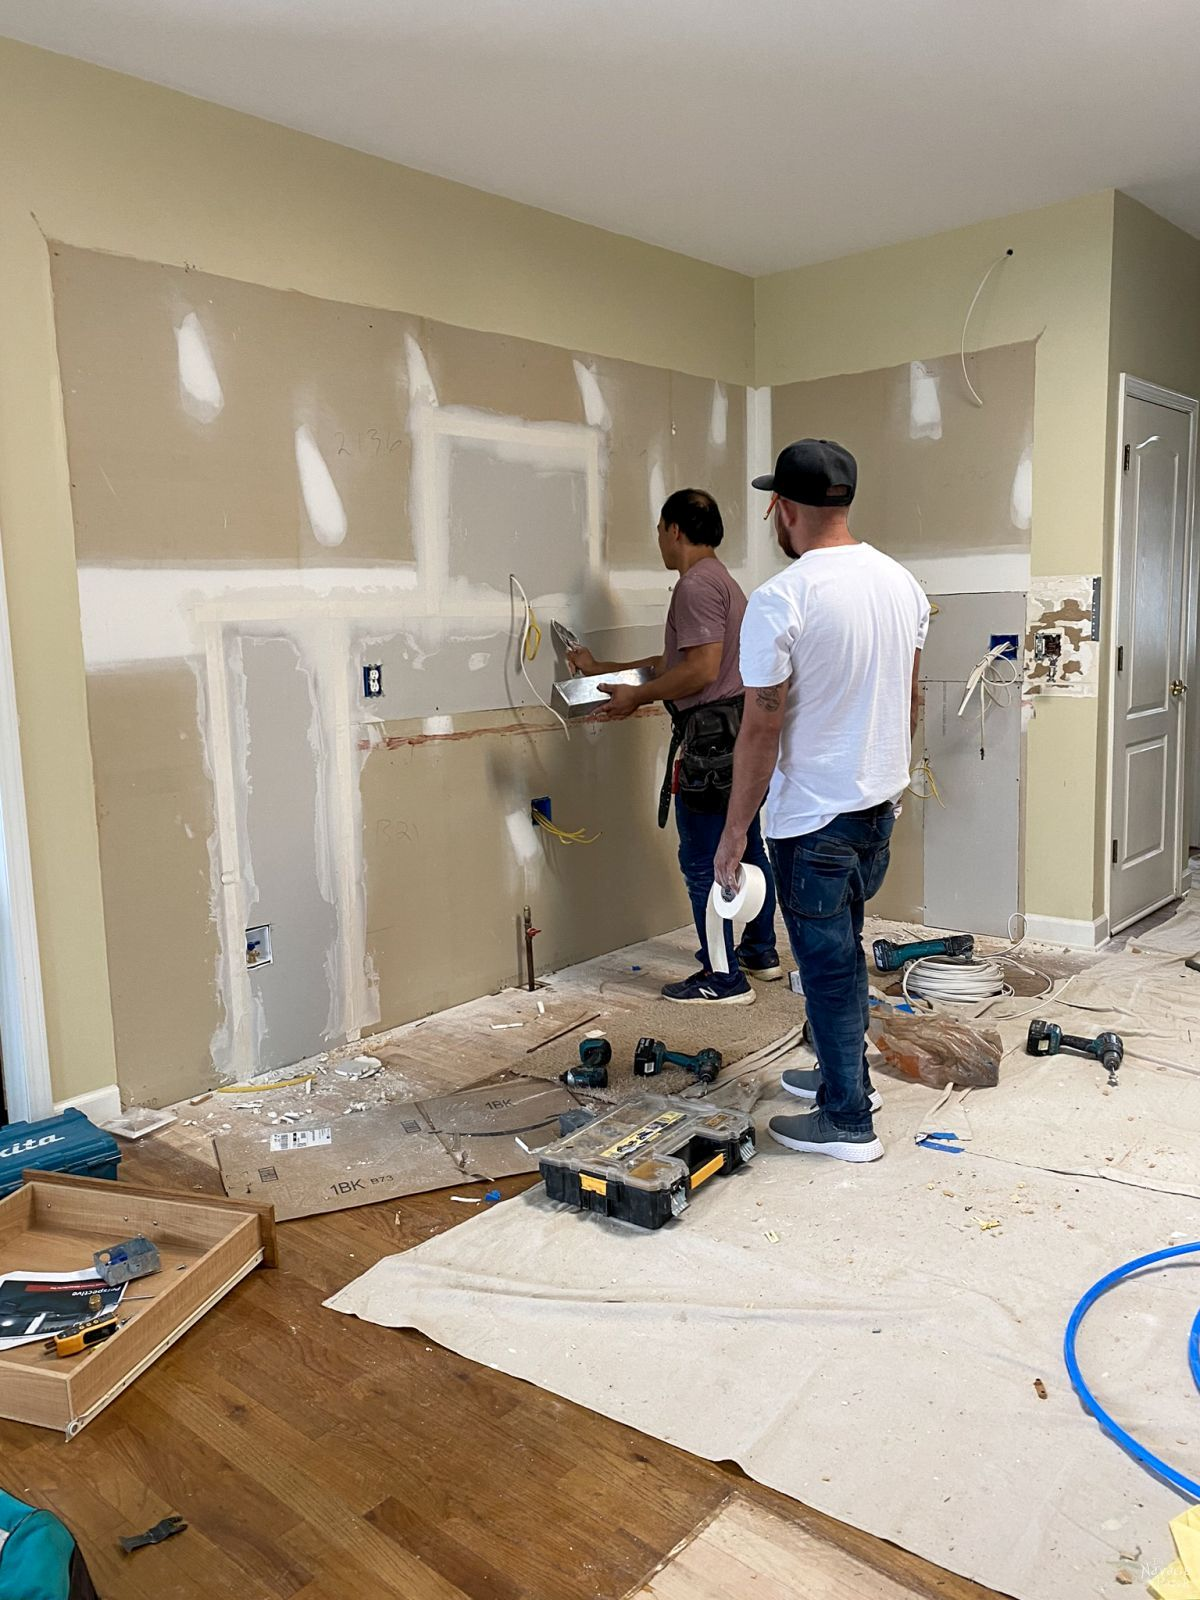 taping drywall in a demoed kitchen